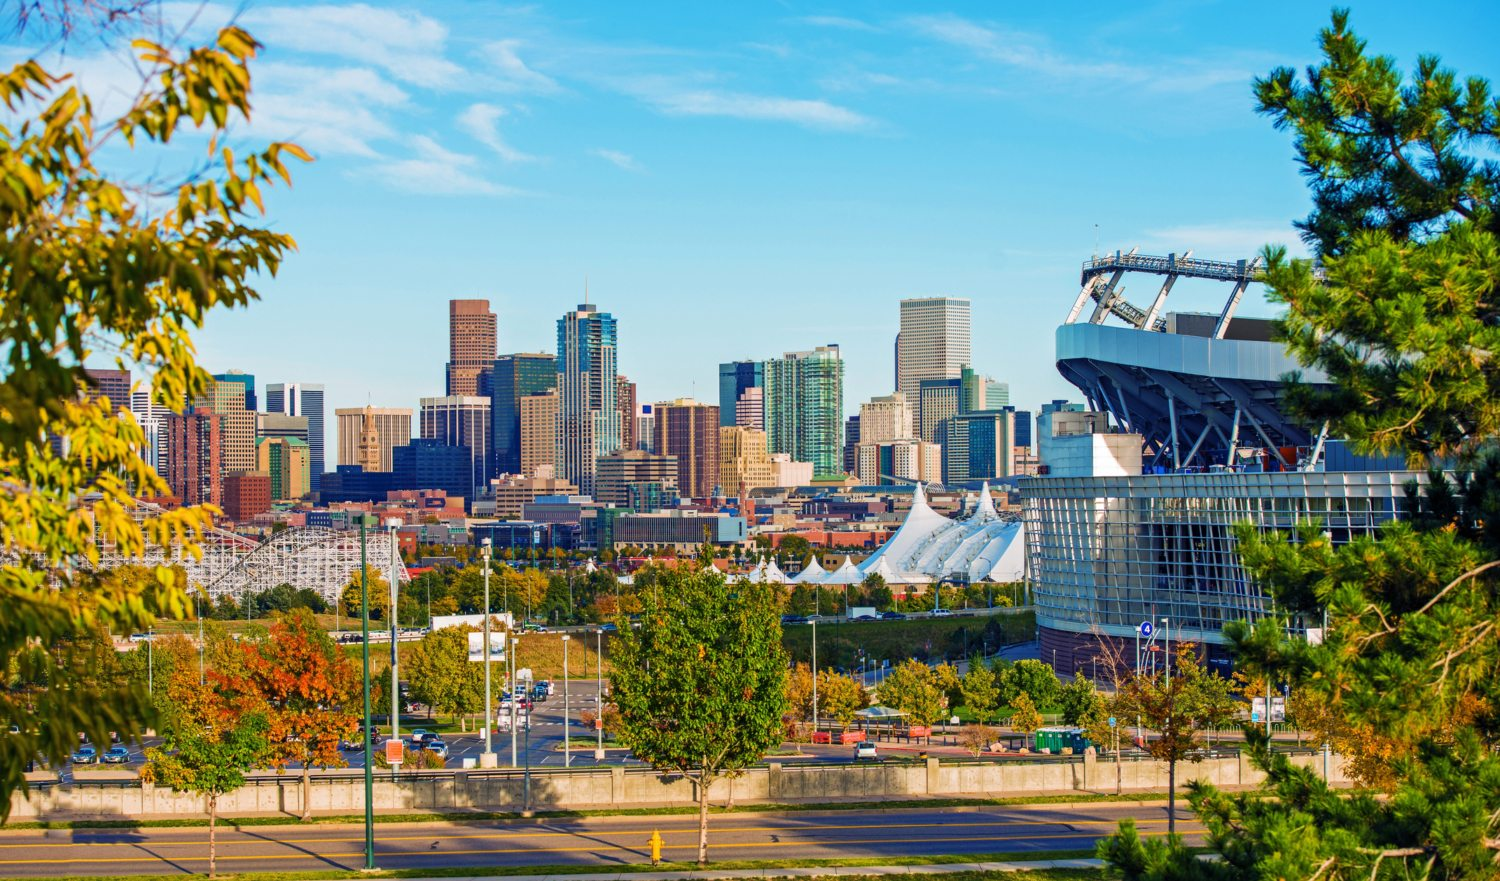 Denver Cityscape Colorado. Downtown Denver Skyline and the Mile High Stadium. Colorado, United States.